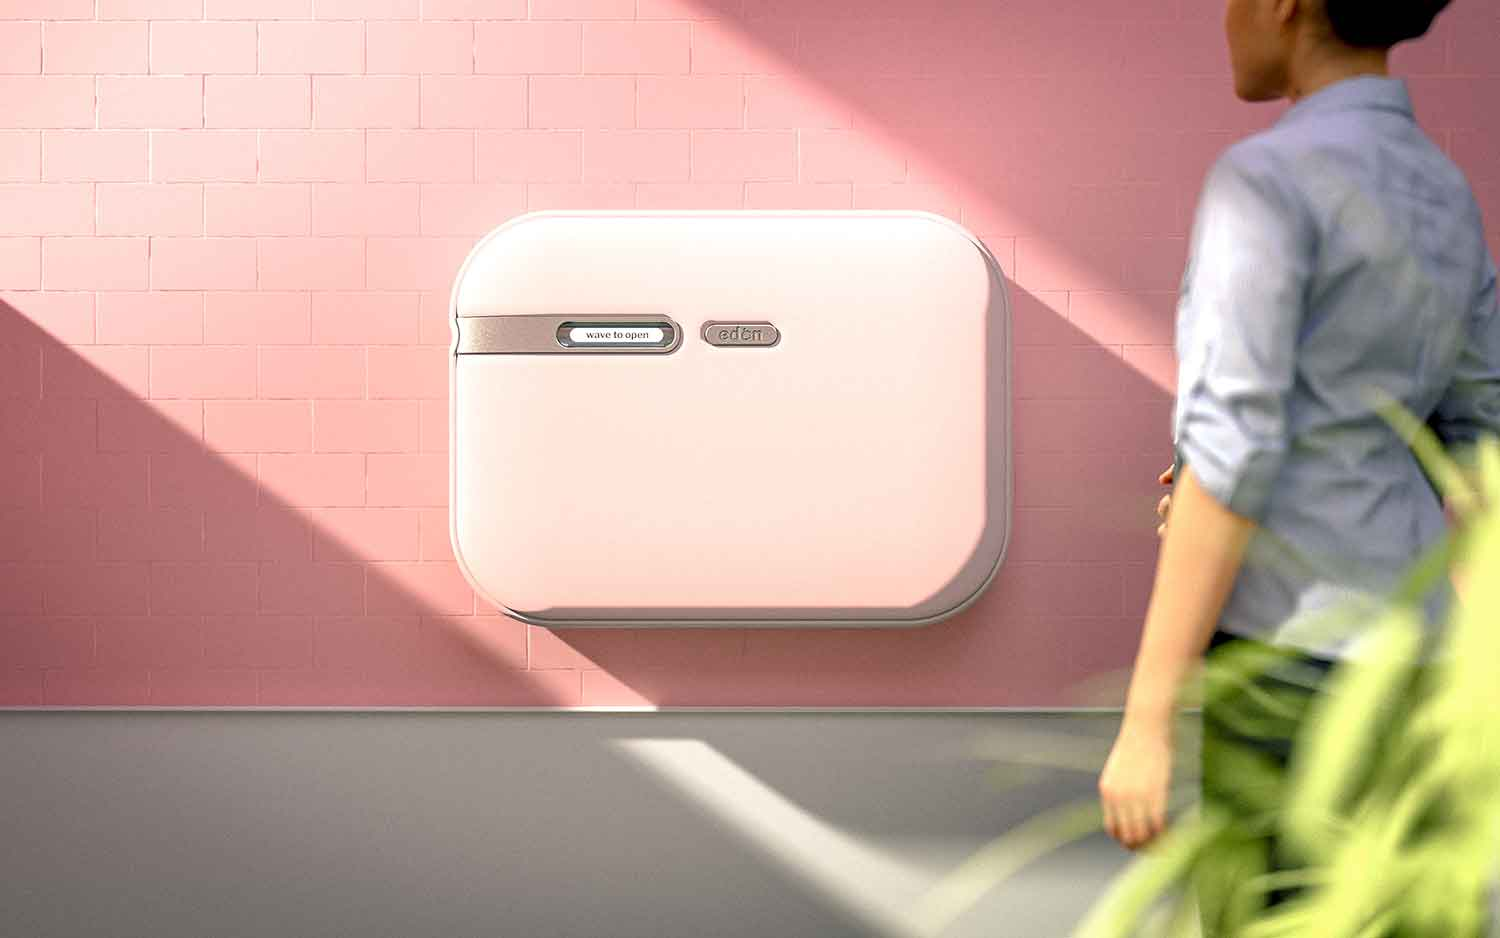 To open Eden, simply wave your hand in front of the sensor; this assists parents with full arms, as well as reduces the spread of bacteria.